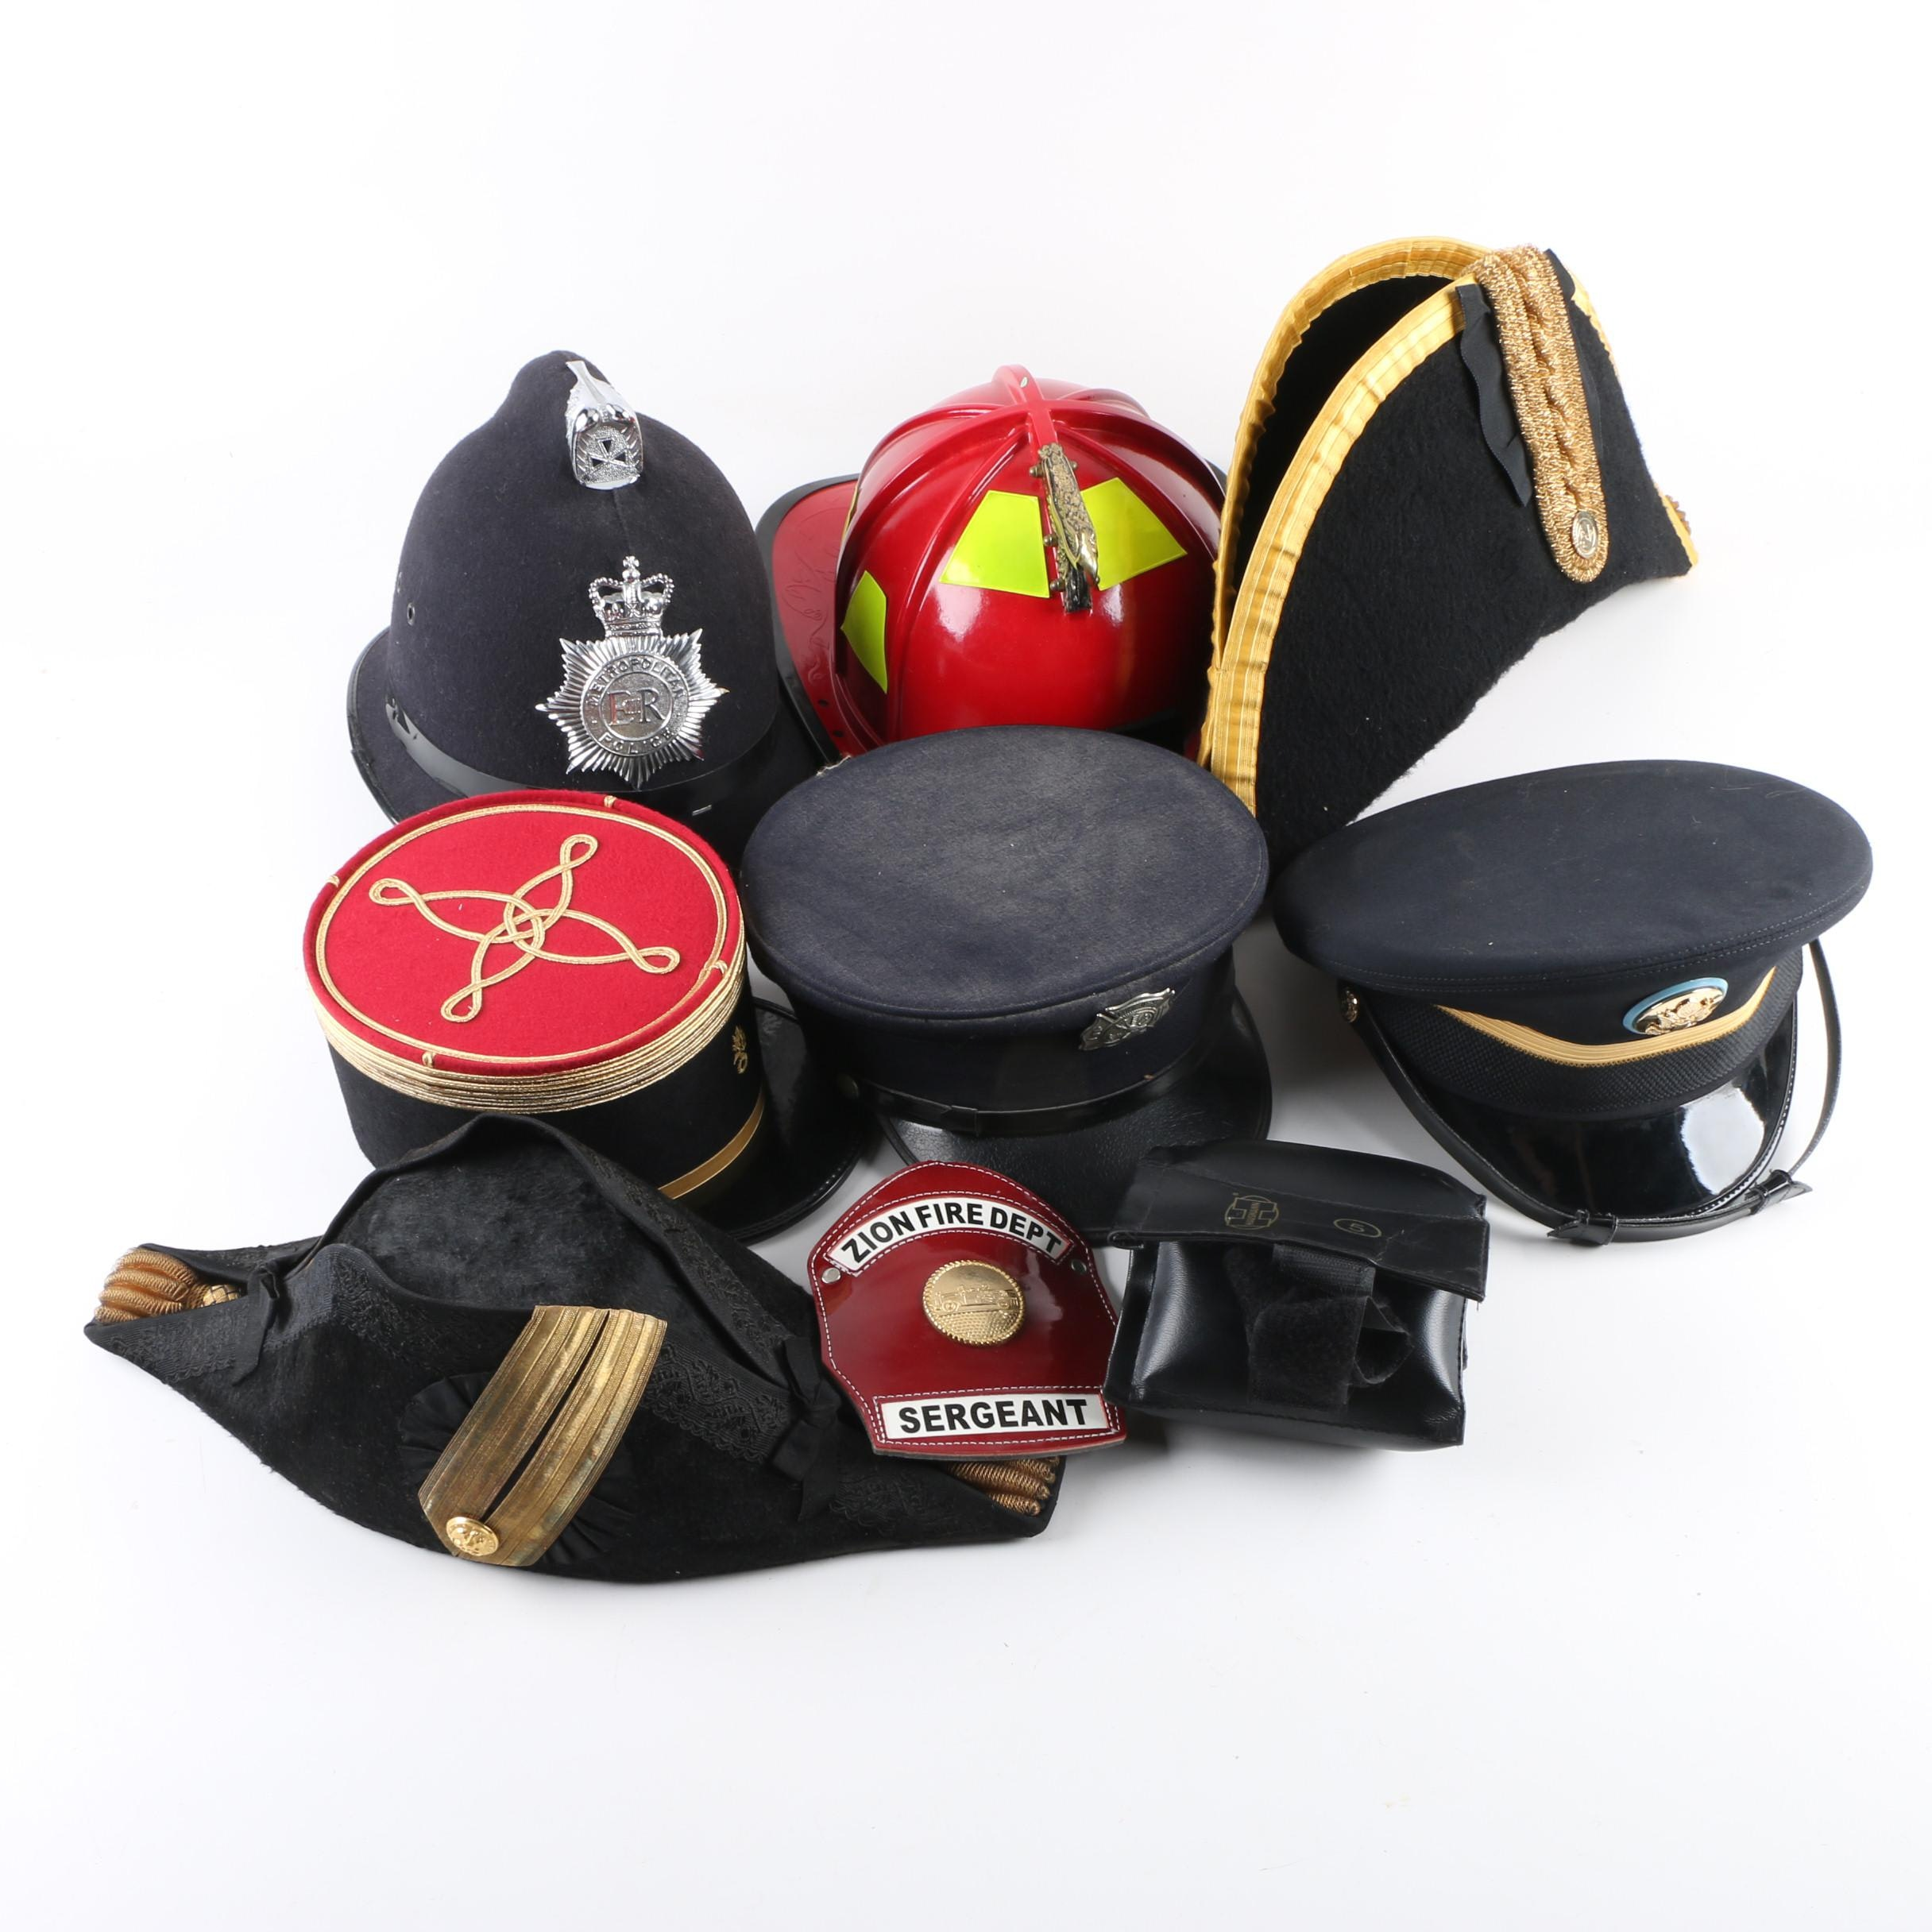 Vintage Fire, Police and Bicorn Hats Including Five Pound Weight